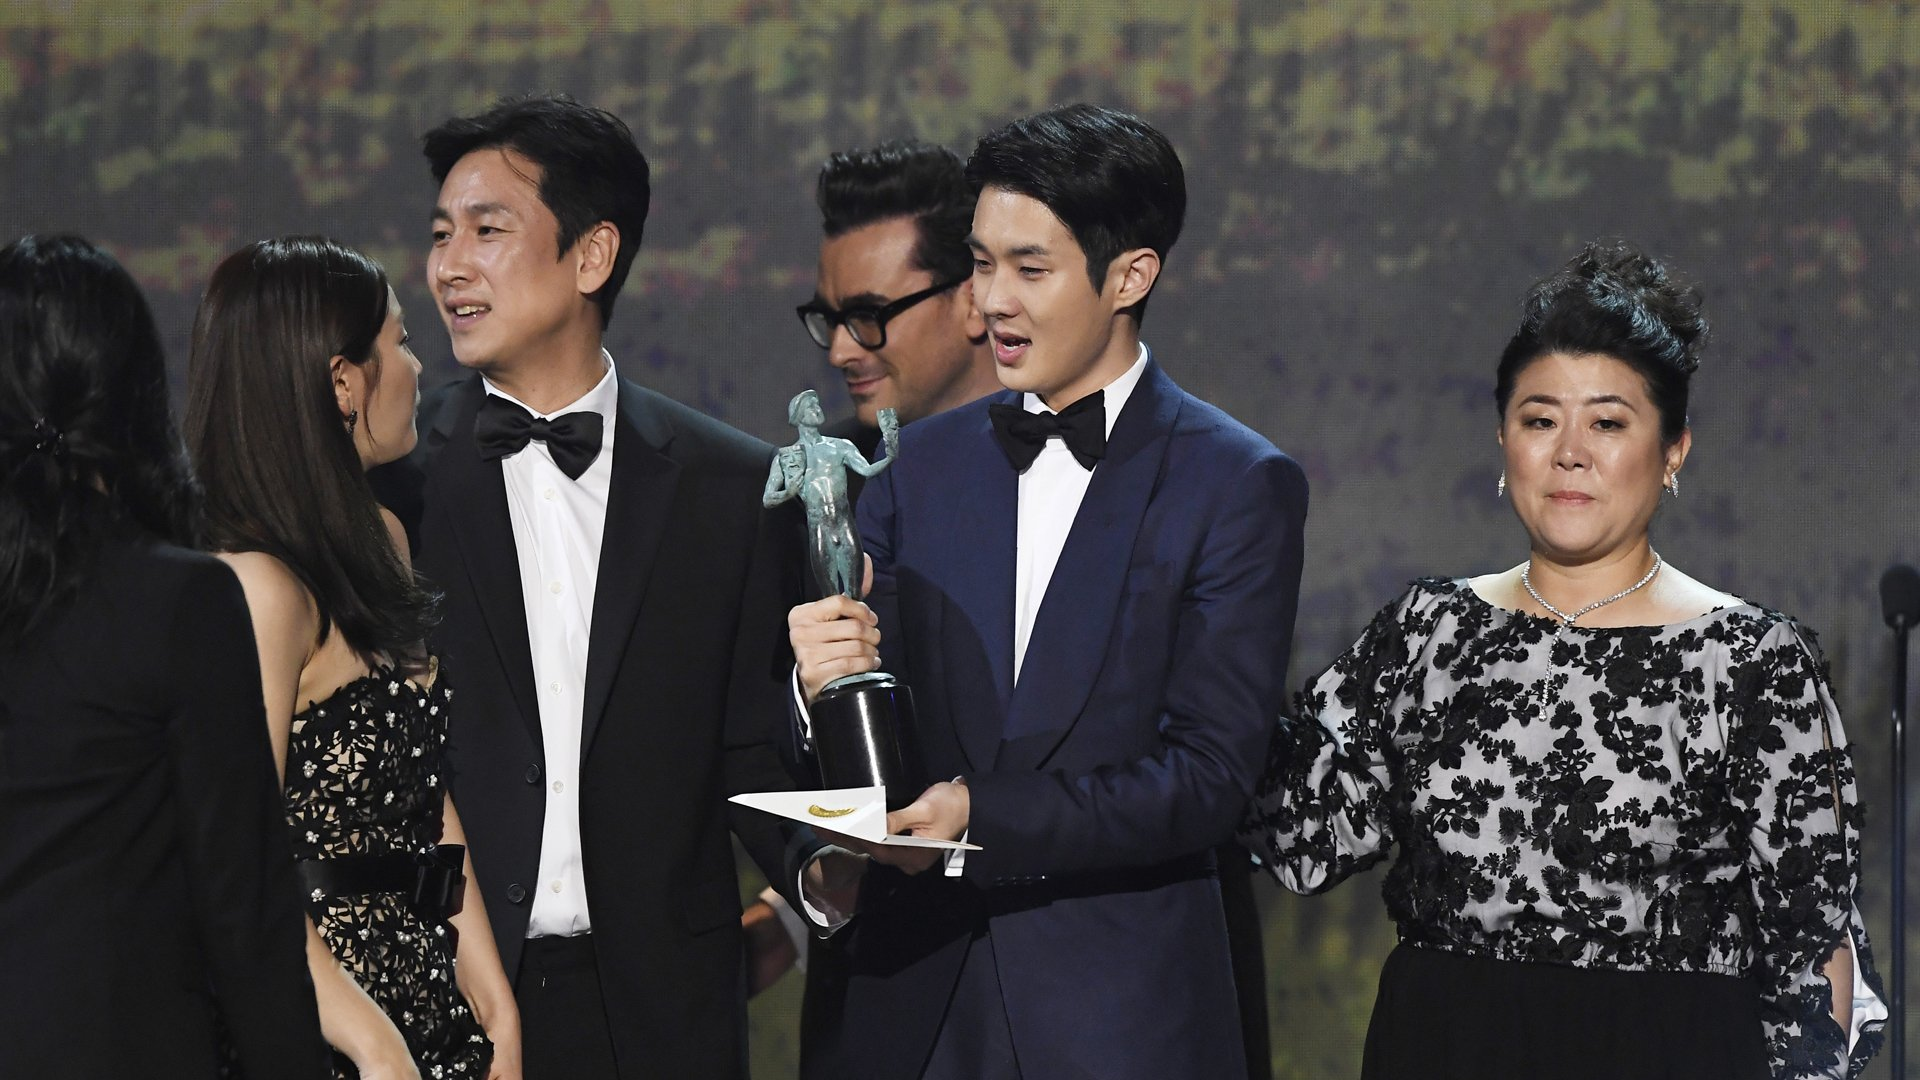 (L-R) Cho Yeo-jeong, Choi Woo-shik, Lee Sun Gyun, and Chang Hyae-jin accept Outstanding Performance by a Cast in a Motion Picture for 'Parasite' onstage during the 26th Annual Screen Actors Guild Awards at The Shrine Auditorium on January 19, 2020 in Los Angeles, California. 721359 (Credit: Kevork Djansezian/Getty Images for Turner)